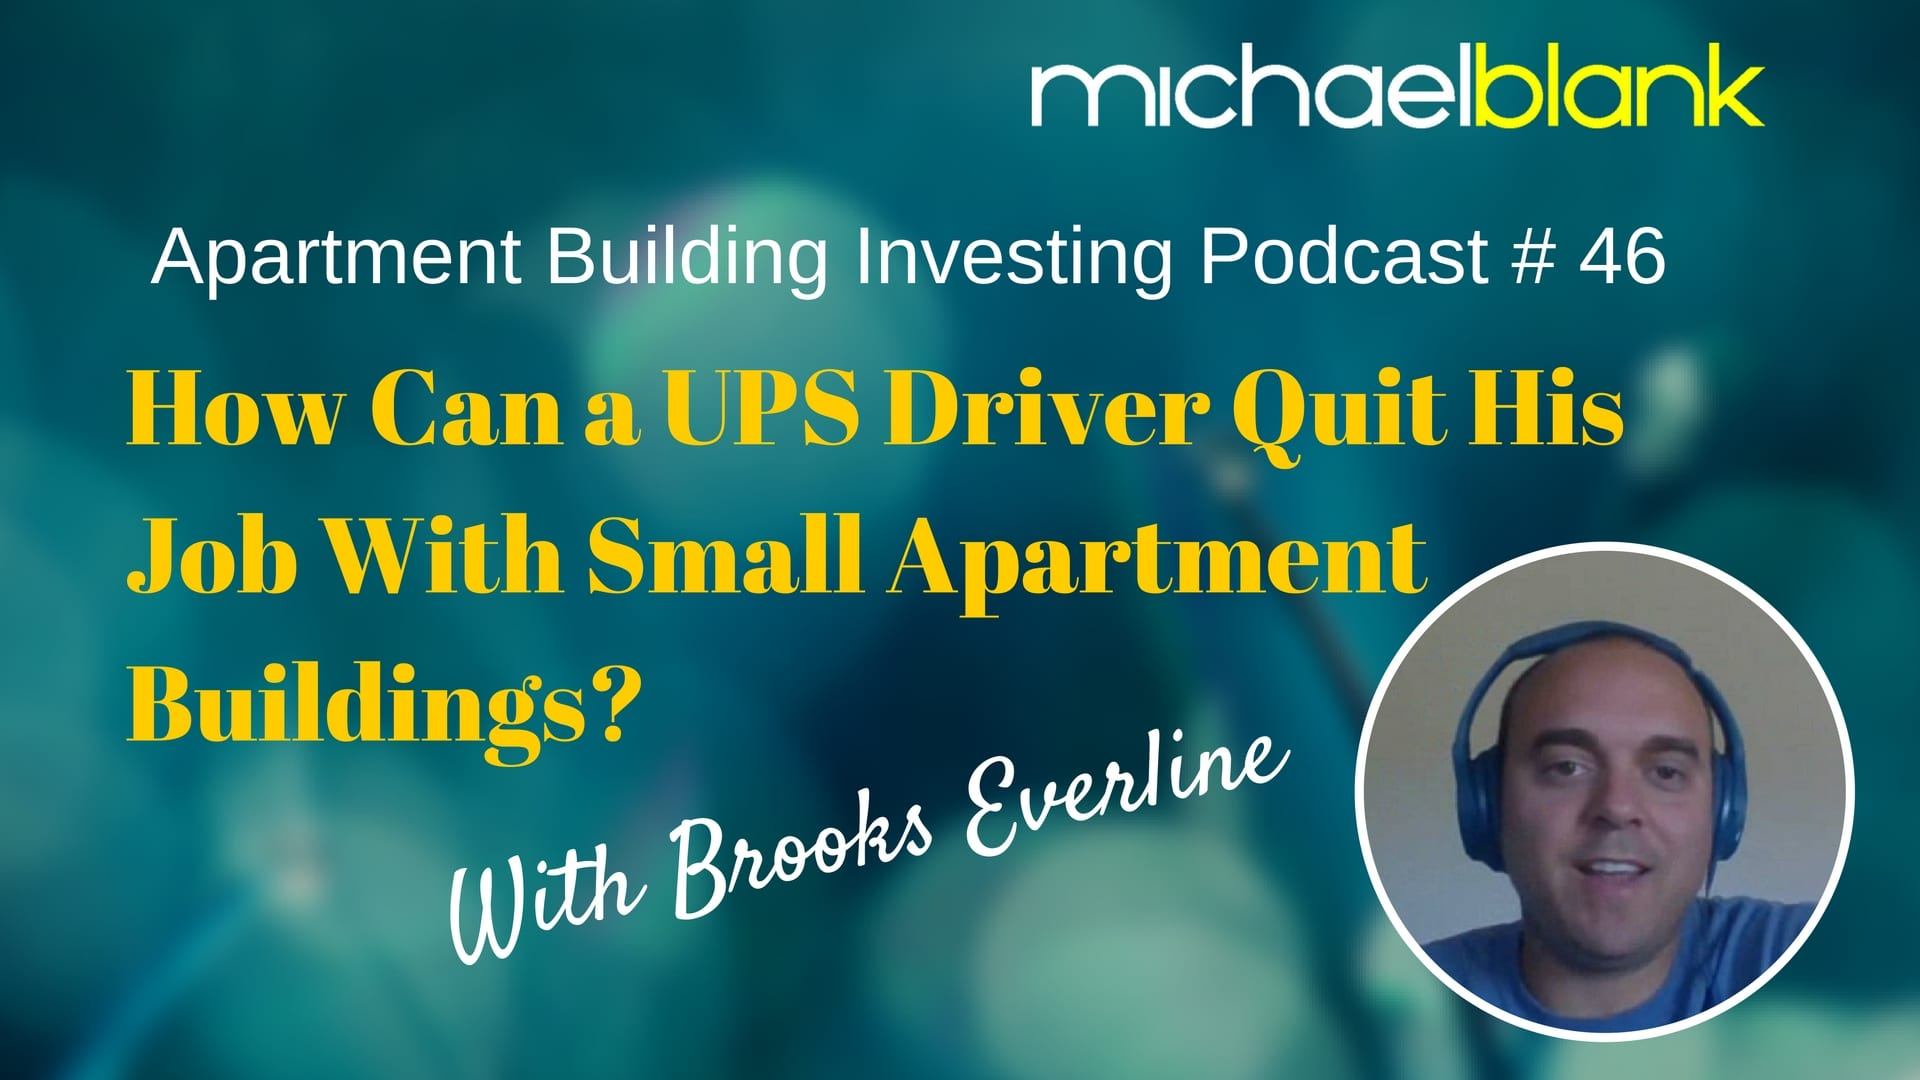 MB 046: How Can a UPS Driver Quit His Job With Small Apartment Buildings?